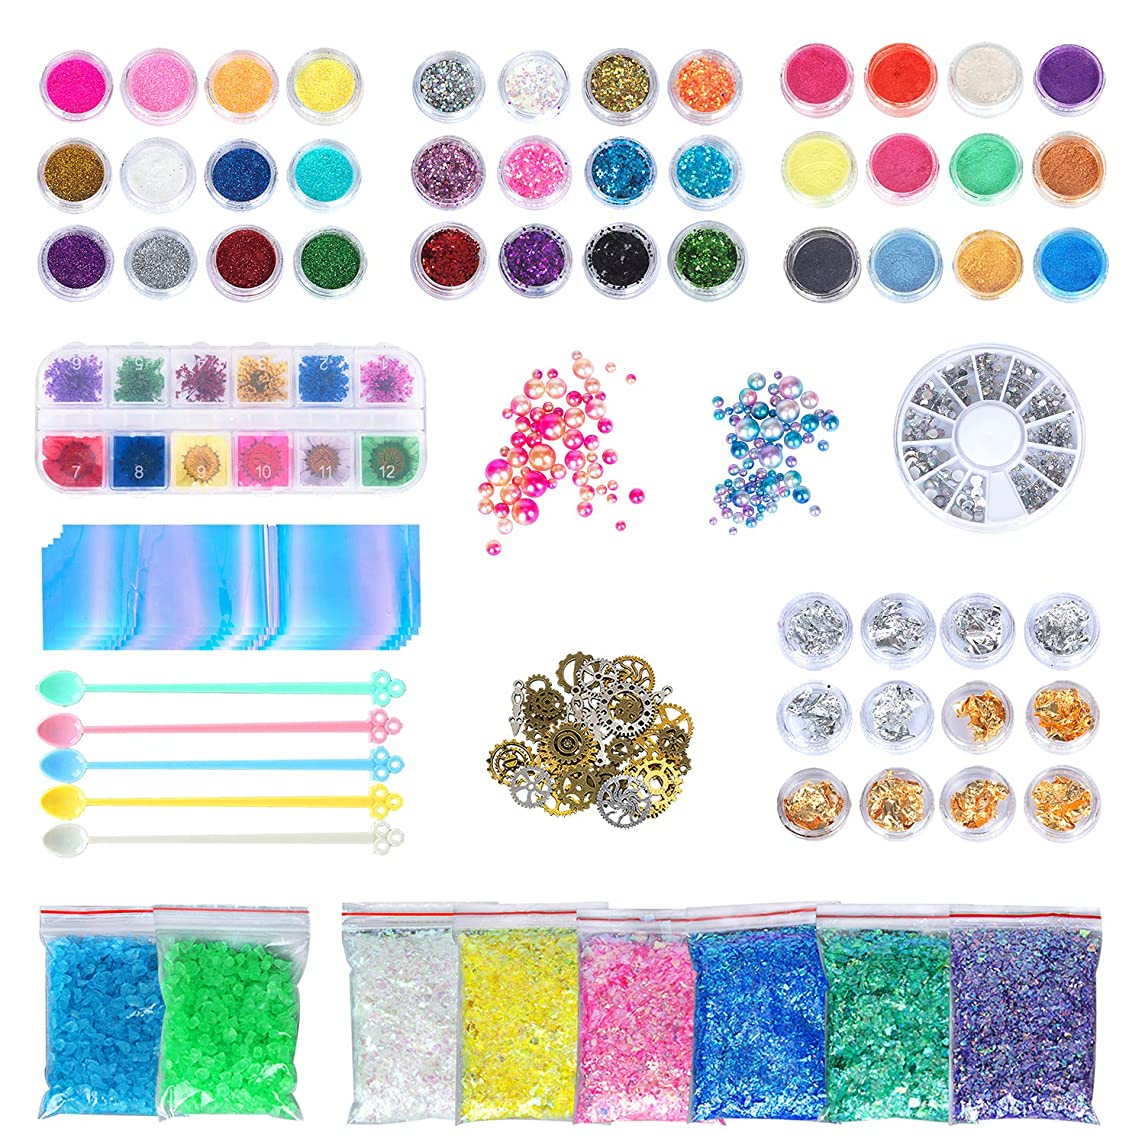 More Than 50 Pcs Resin Jewelry Making Supplies Kit Art Craft Supplies for Resin, Slime, Nail Art, DIY Craft, Including Glitter,Powder,Mylar Flakes,Dry Flowers, Beads,Wheel Gears,Foil,Glass Stone